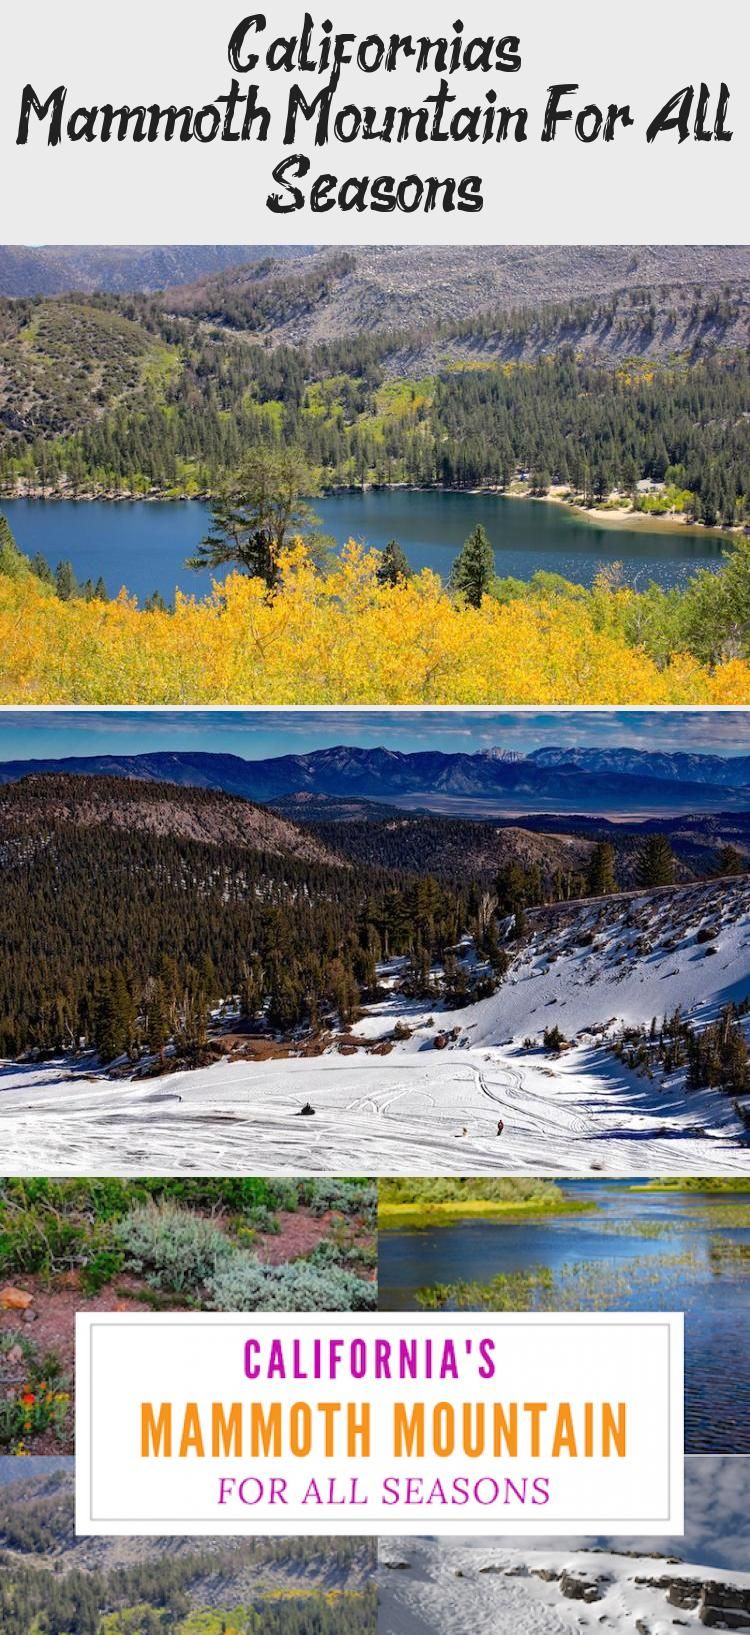 Californias mammoth mountain for all seasons in 2020